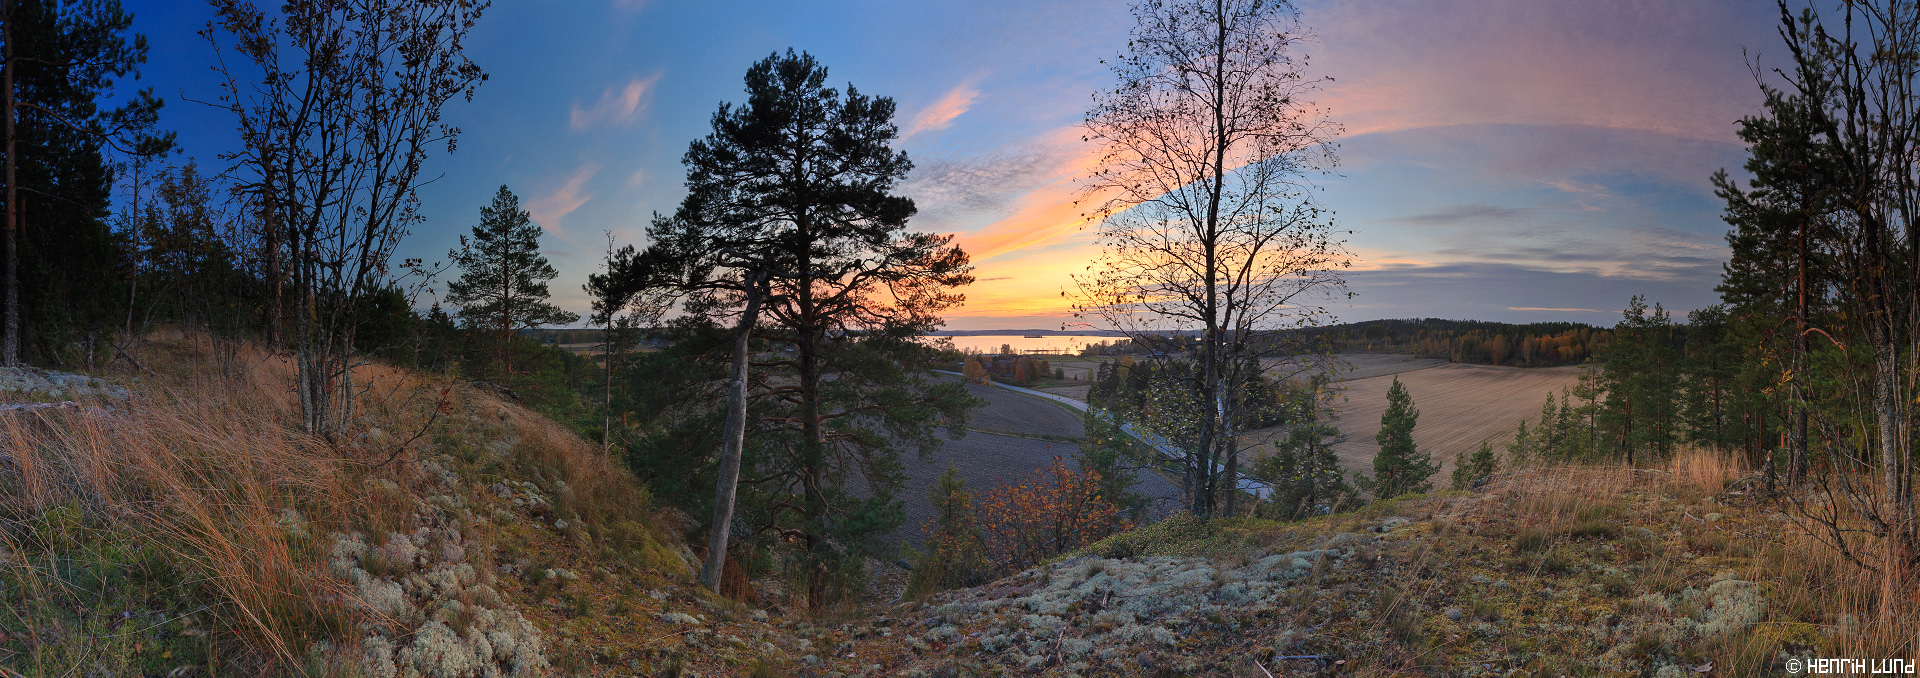 Panoramic view from Högberget in Norrby, Lappträsk, Finland, October 2014.